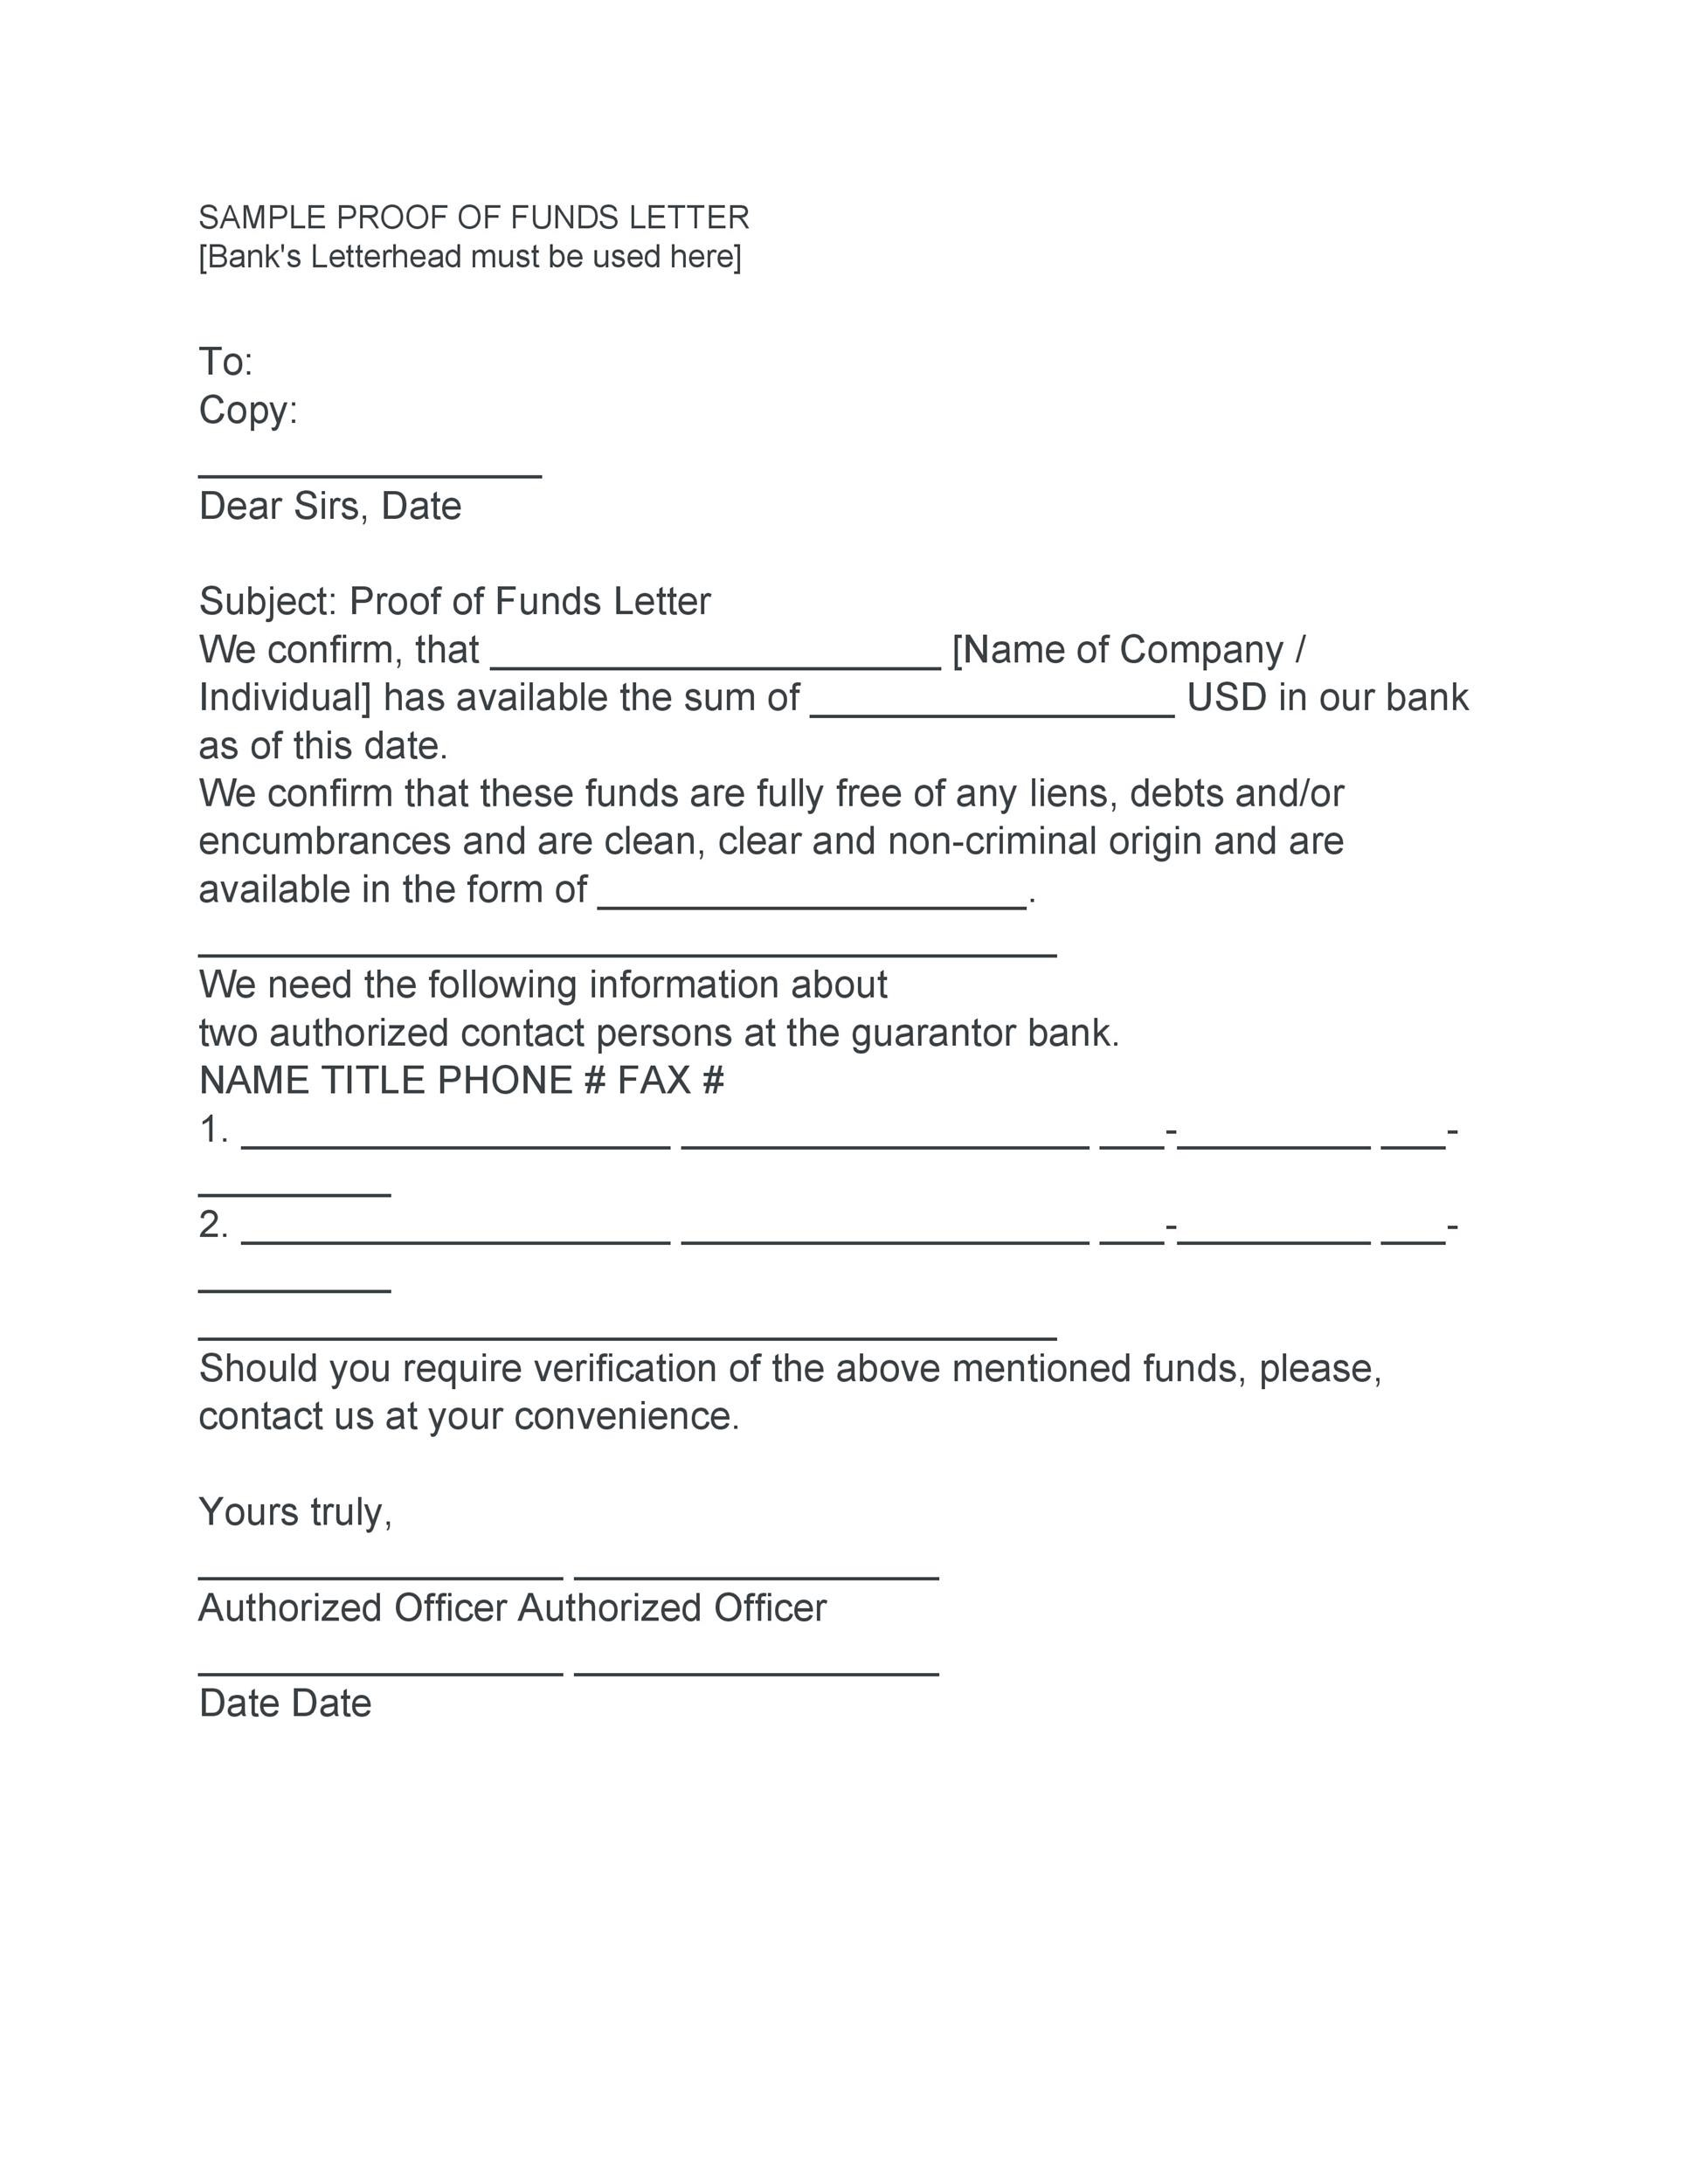 25 Best Proof Of Funds Letter Templates - Template Lab